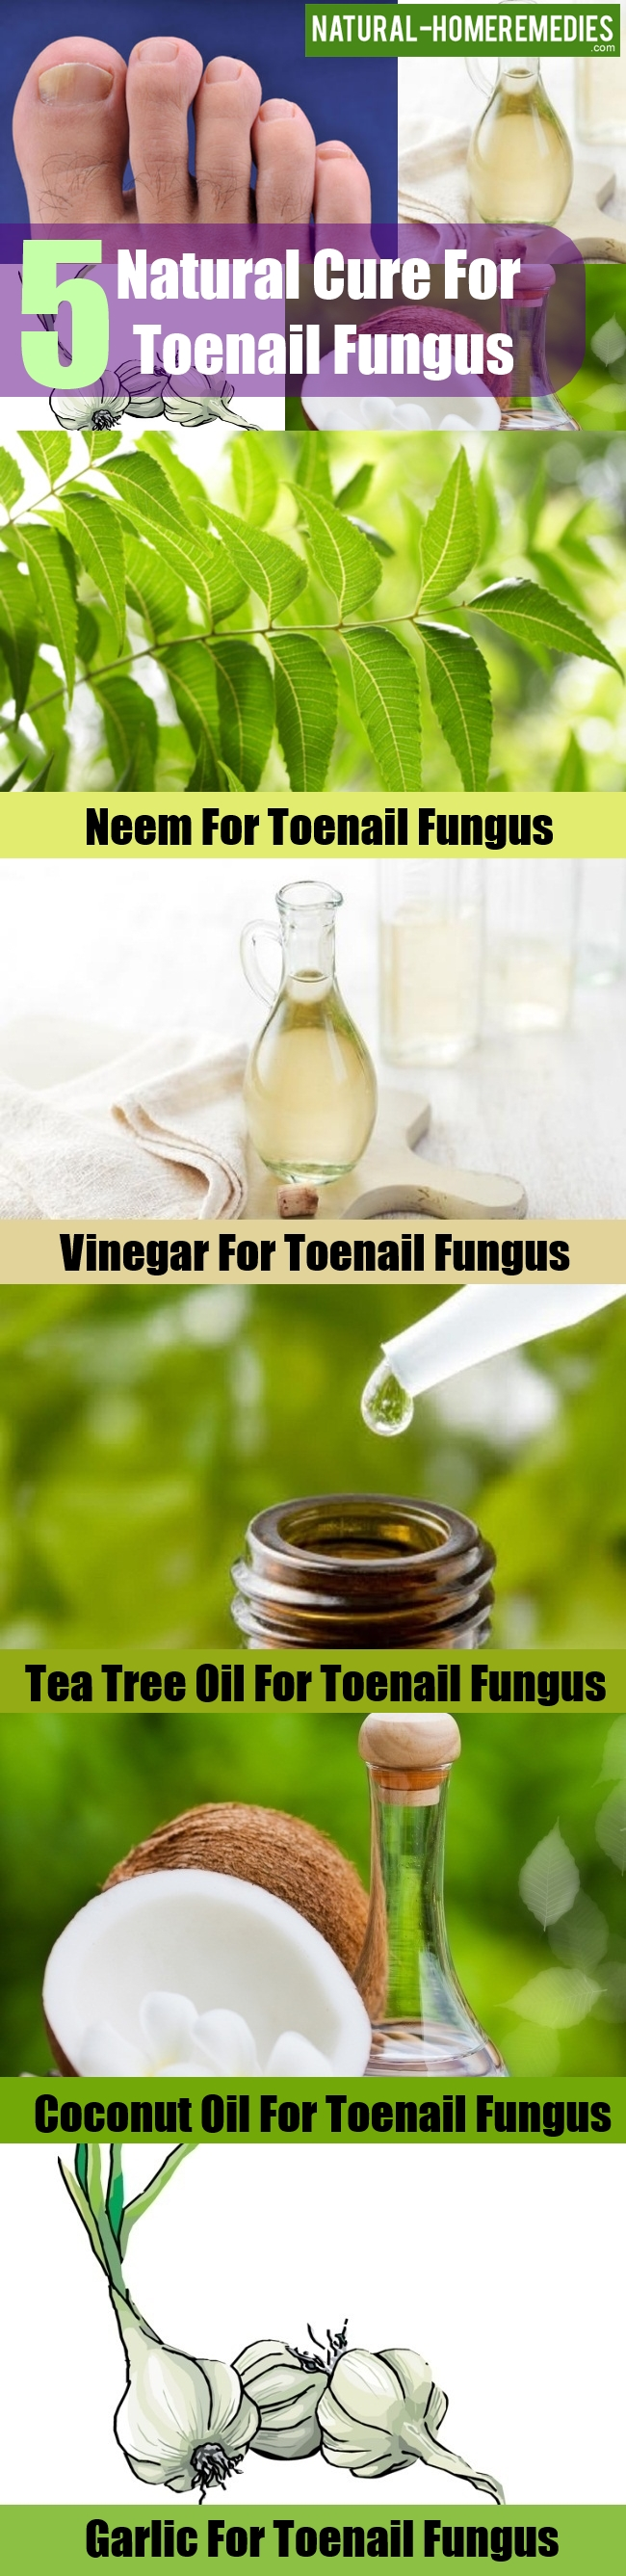 Natural Cure For Toenail Fungus